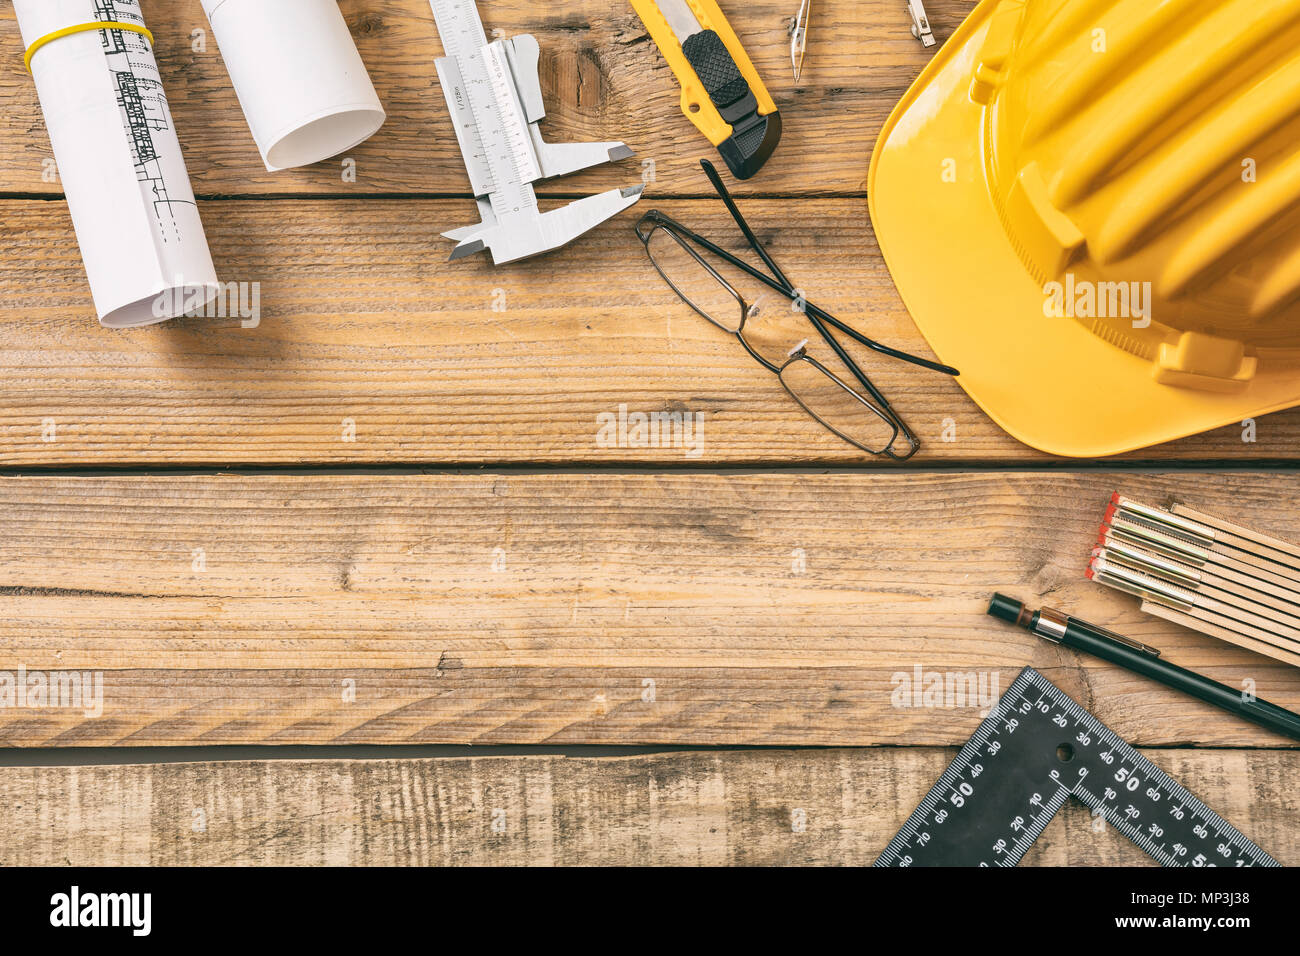 Architect workplace top view. Project construction blueprints and engineering tools on wooden desk, copy space - Stock Image